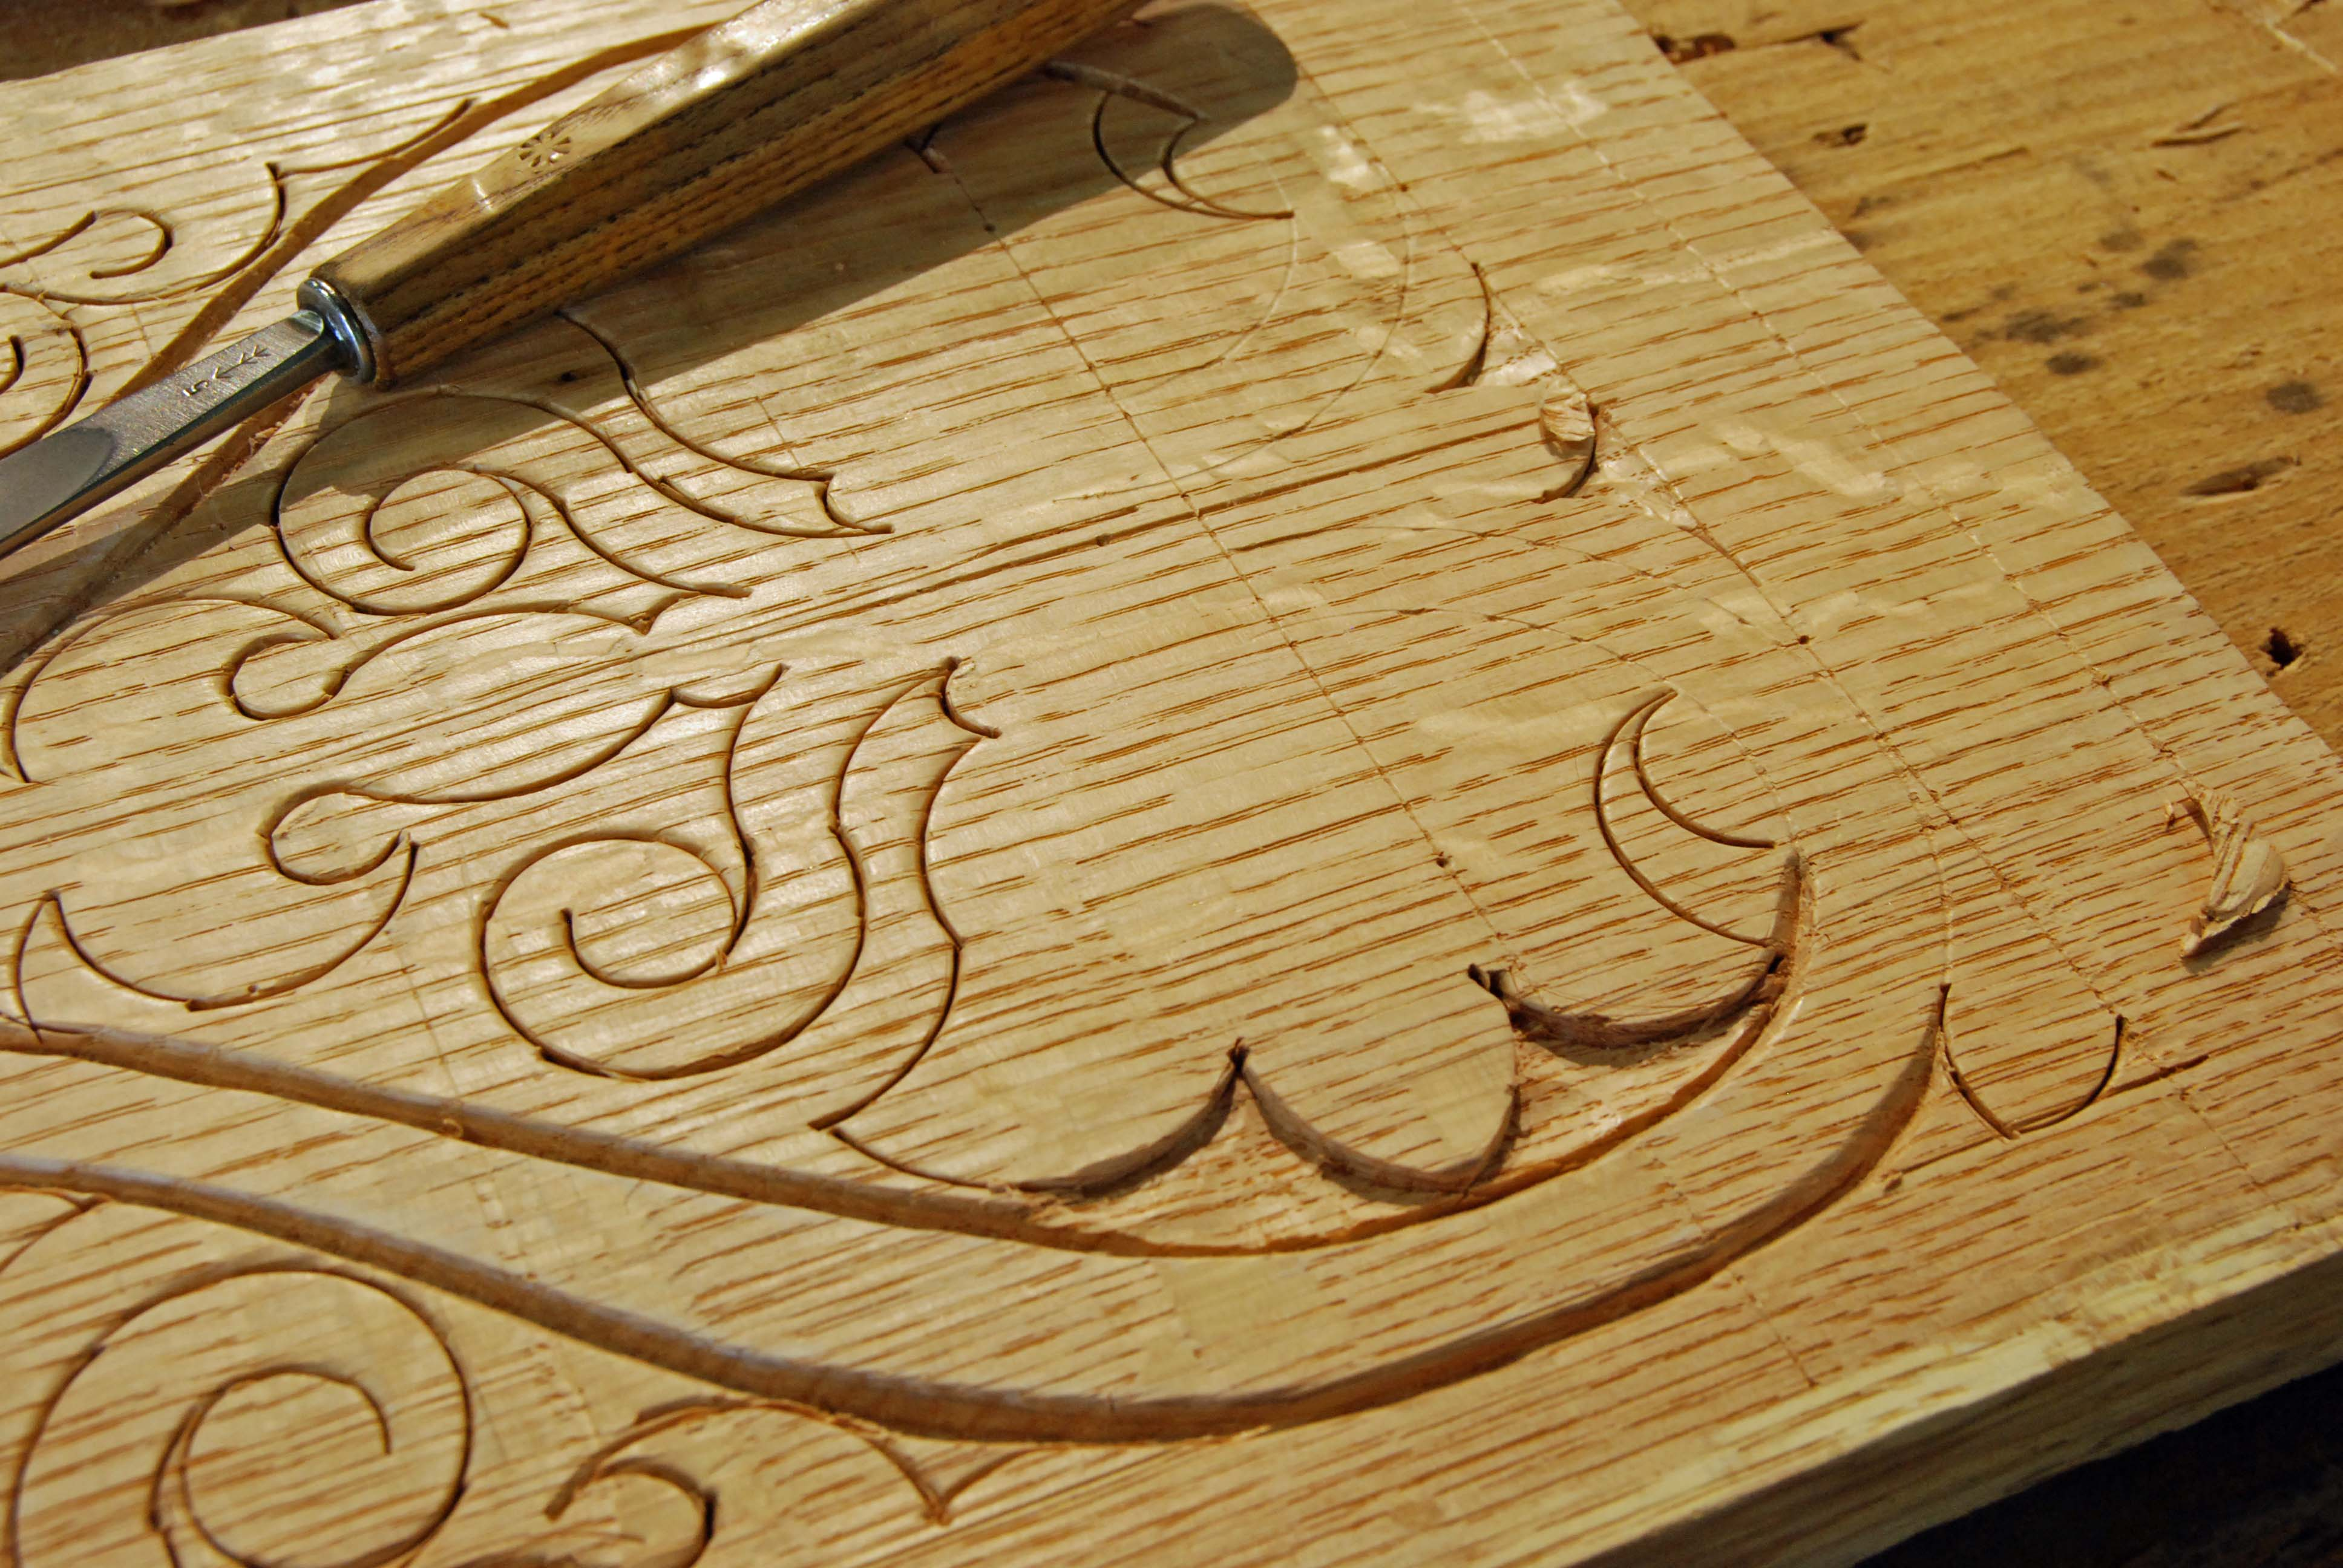 17th C Joinery Carving At Port Townsend School Of